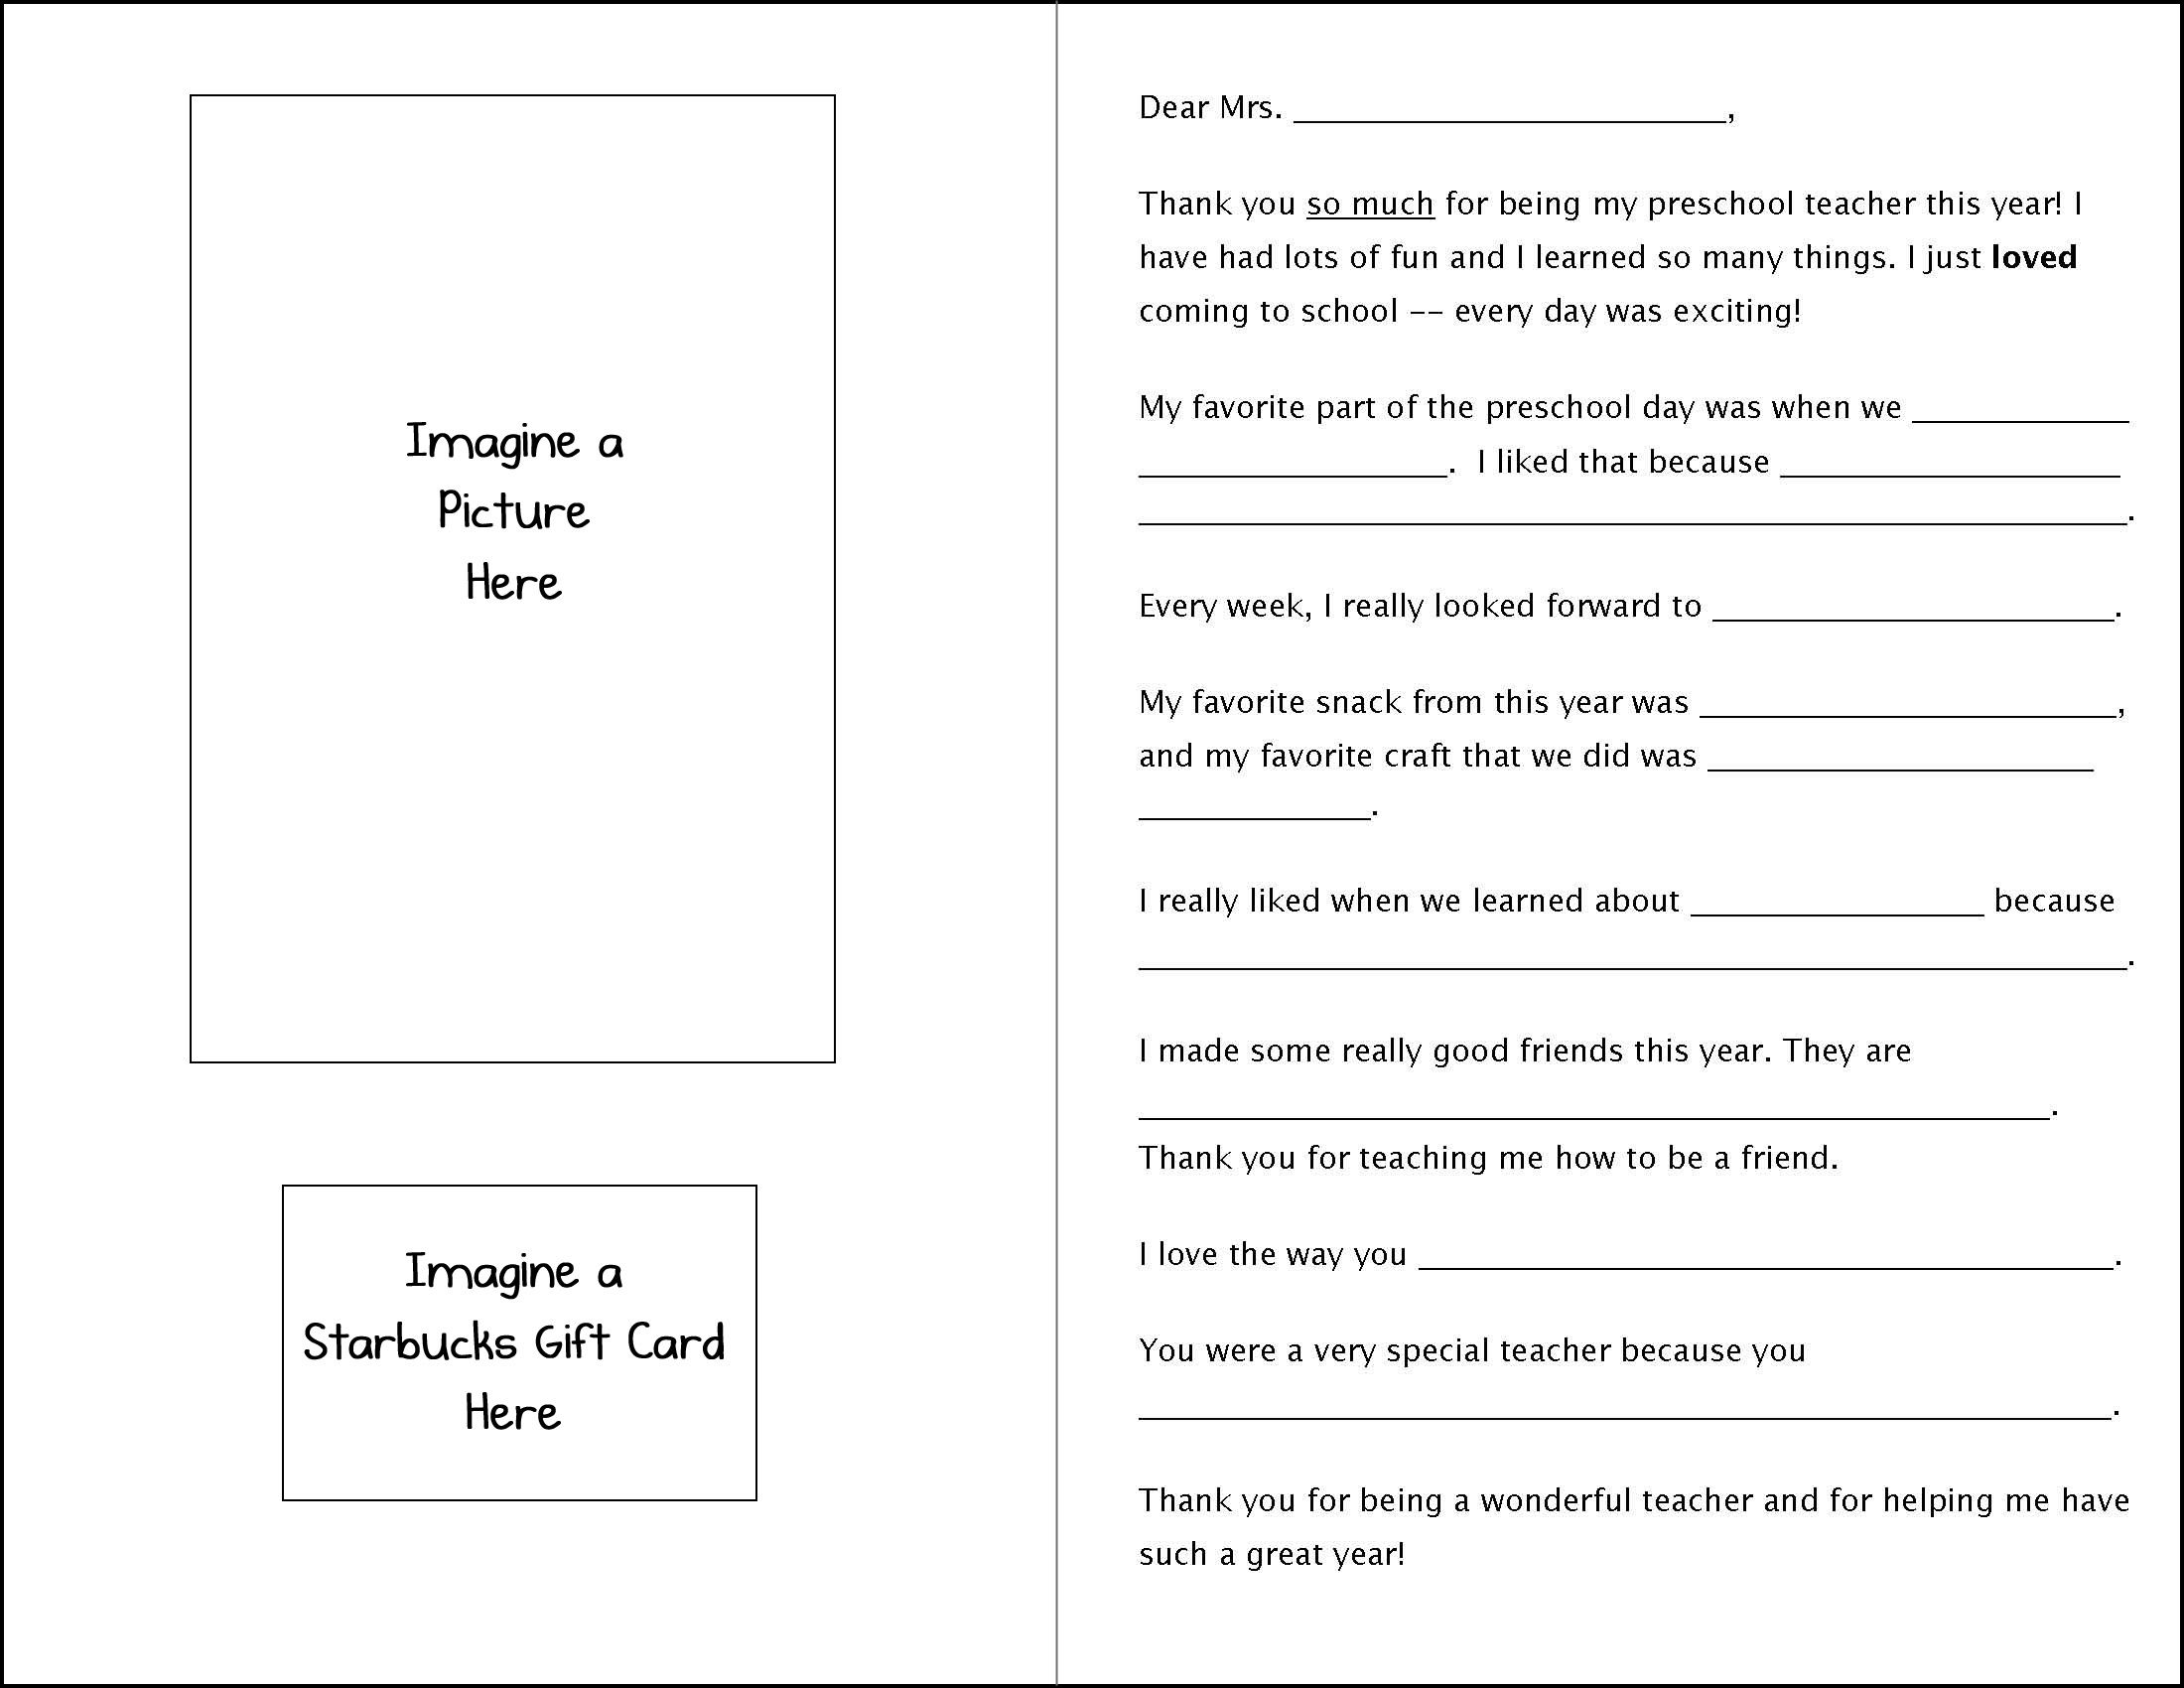 fill in the blank teacher appreciation letter teacher preschool teacher appreciation cards google search